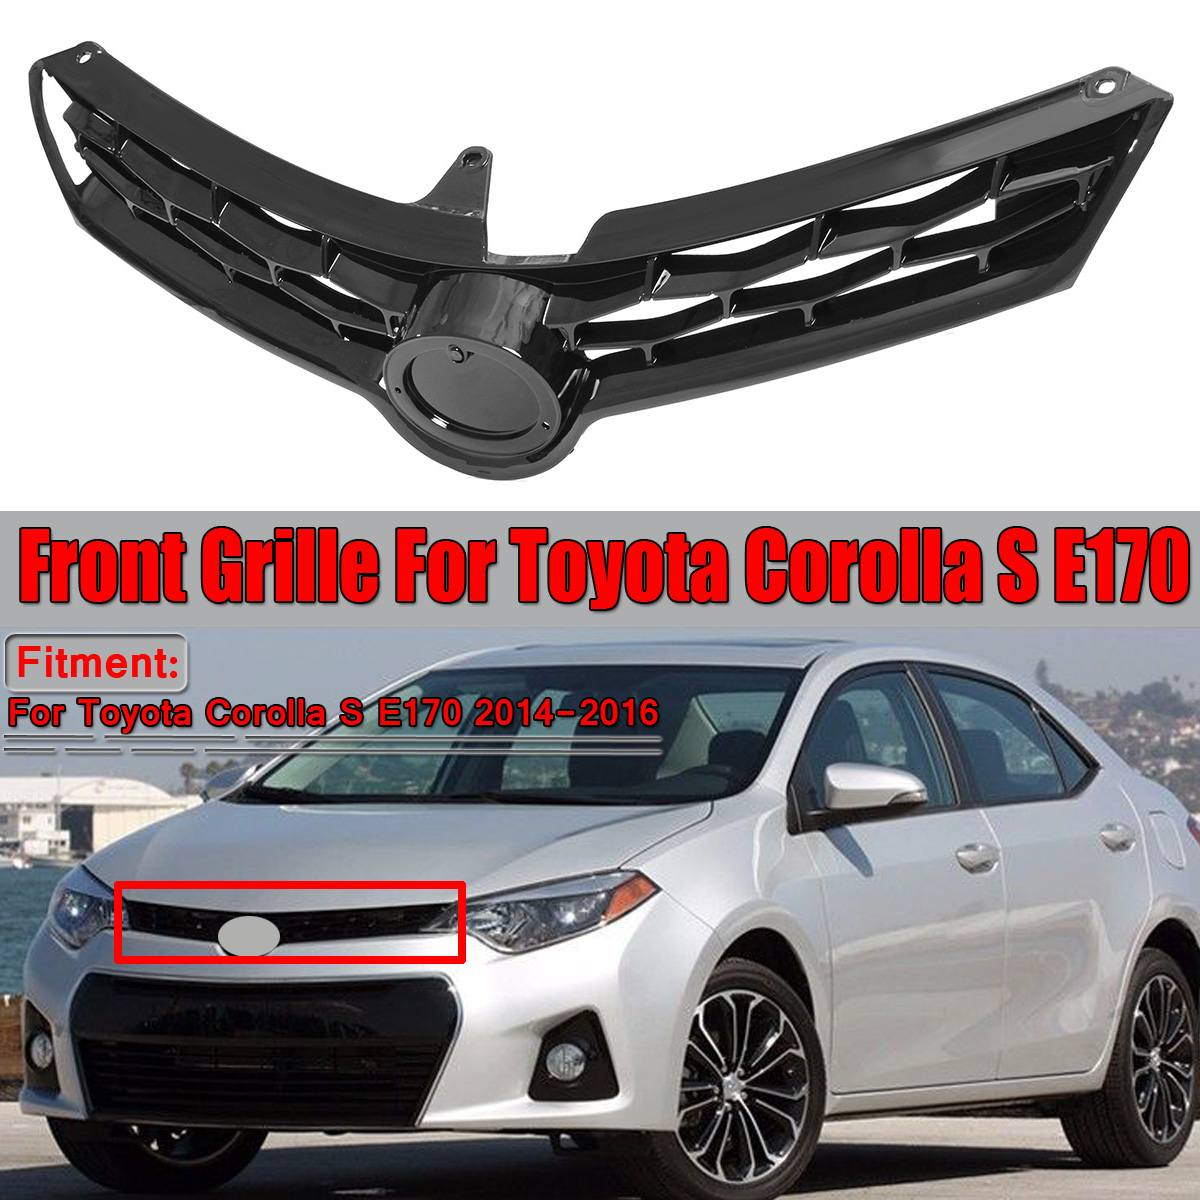 Glossy Black Grill Corolla Car Front Bumper Grille Grill For Toyota Corolla S E170 2014 2015 2016 Racing Grills Without EmblemGlossy Black Grill Corolla Car Front Bumper Grille Grill For Toyota Corolla S E170 2014 2015 2016 Racing Grills Without Emblem